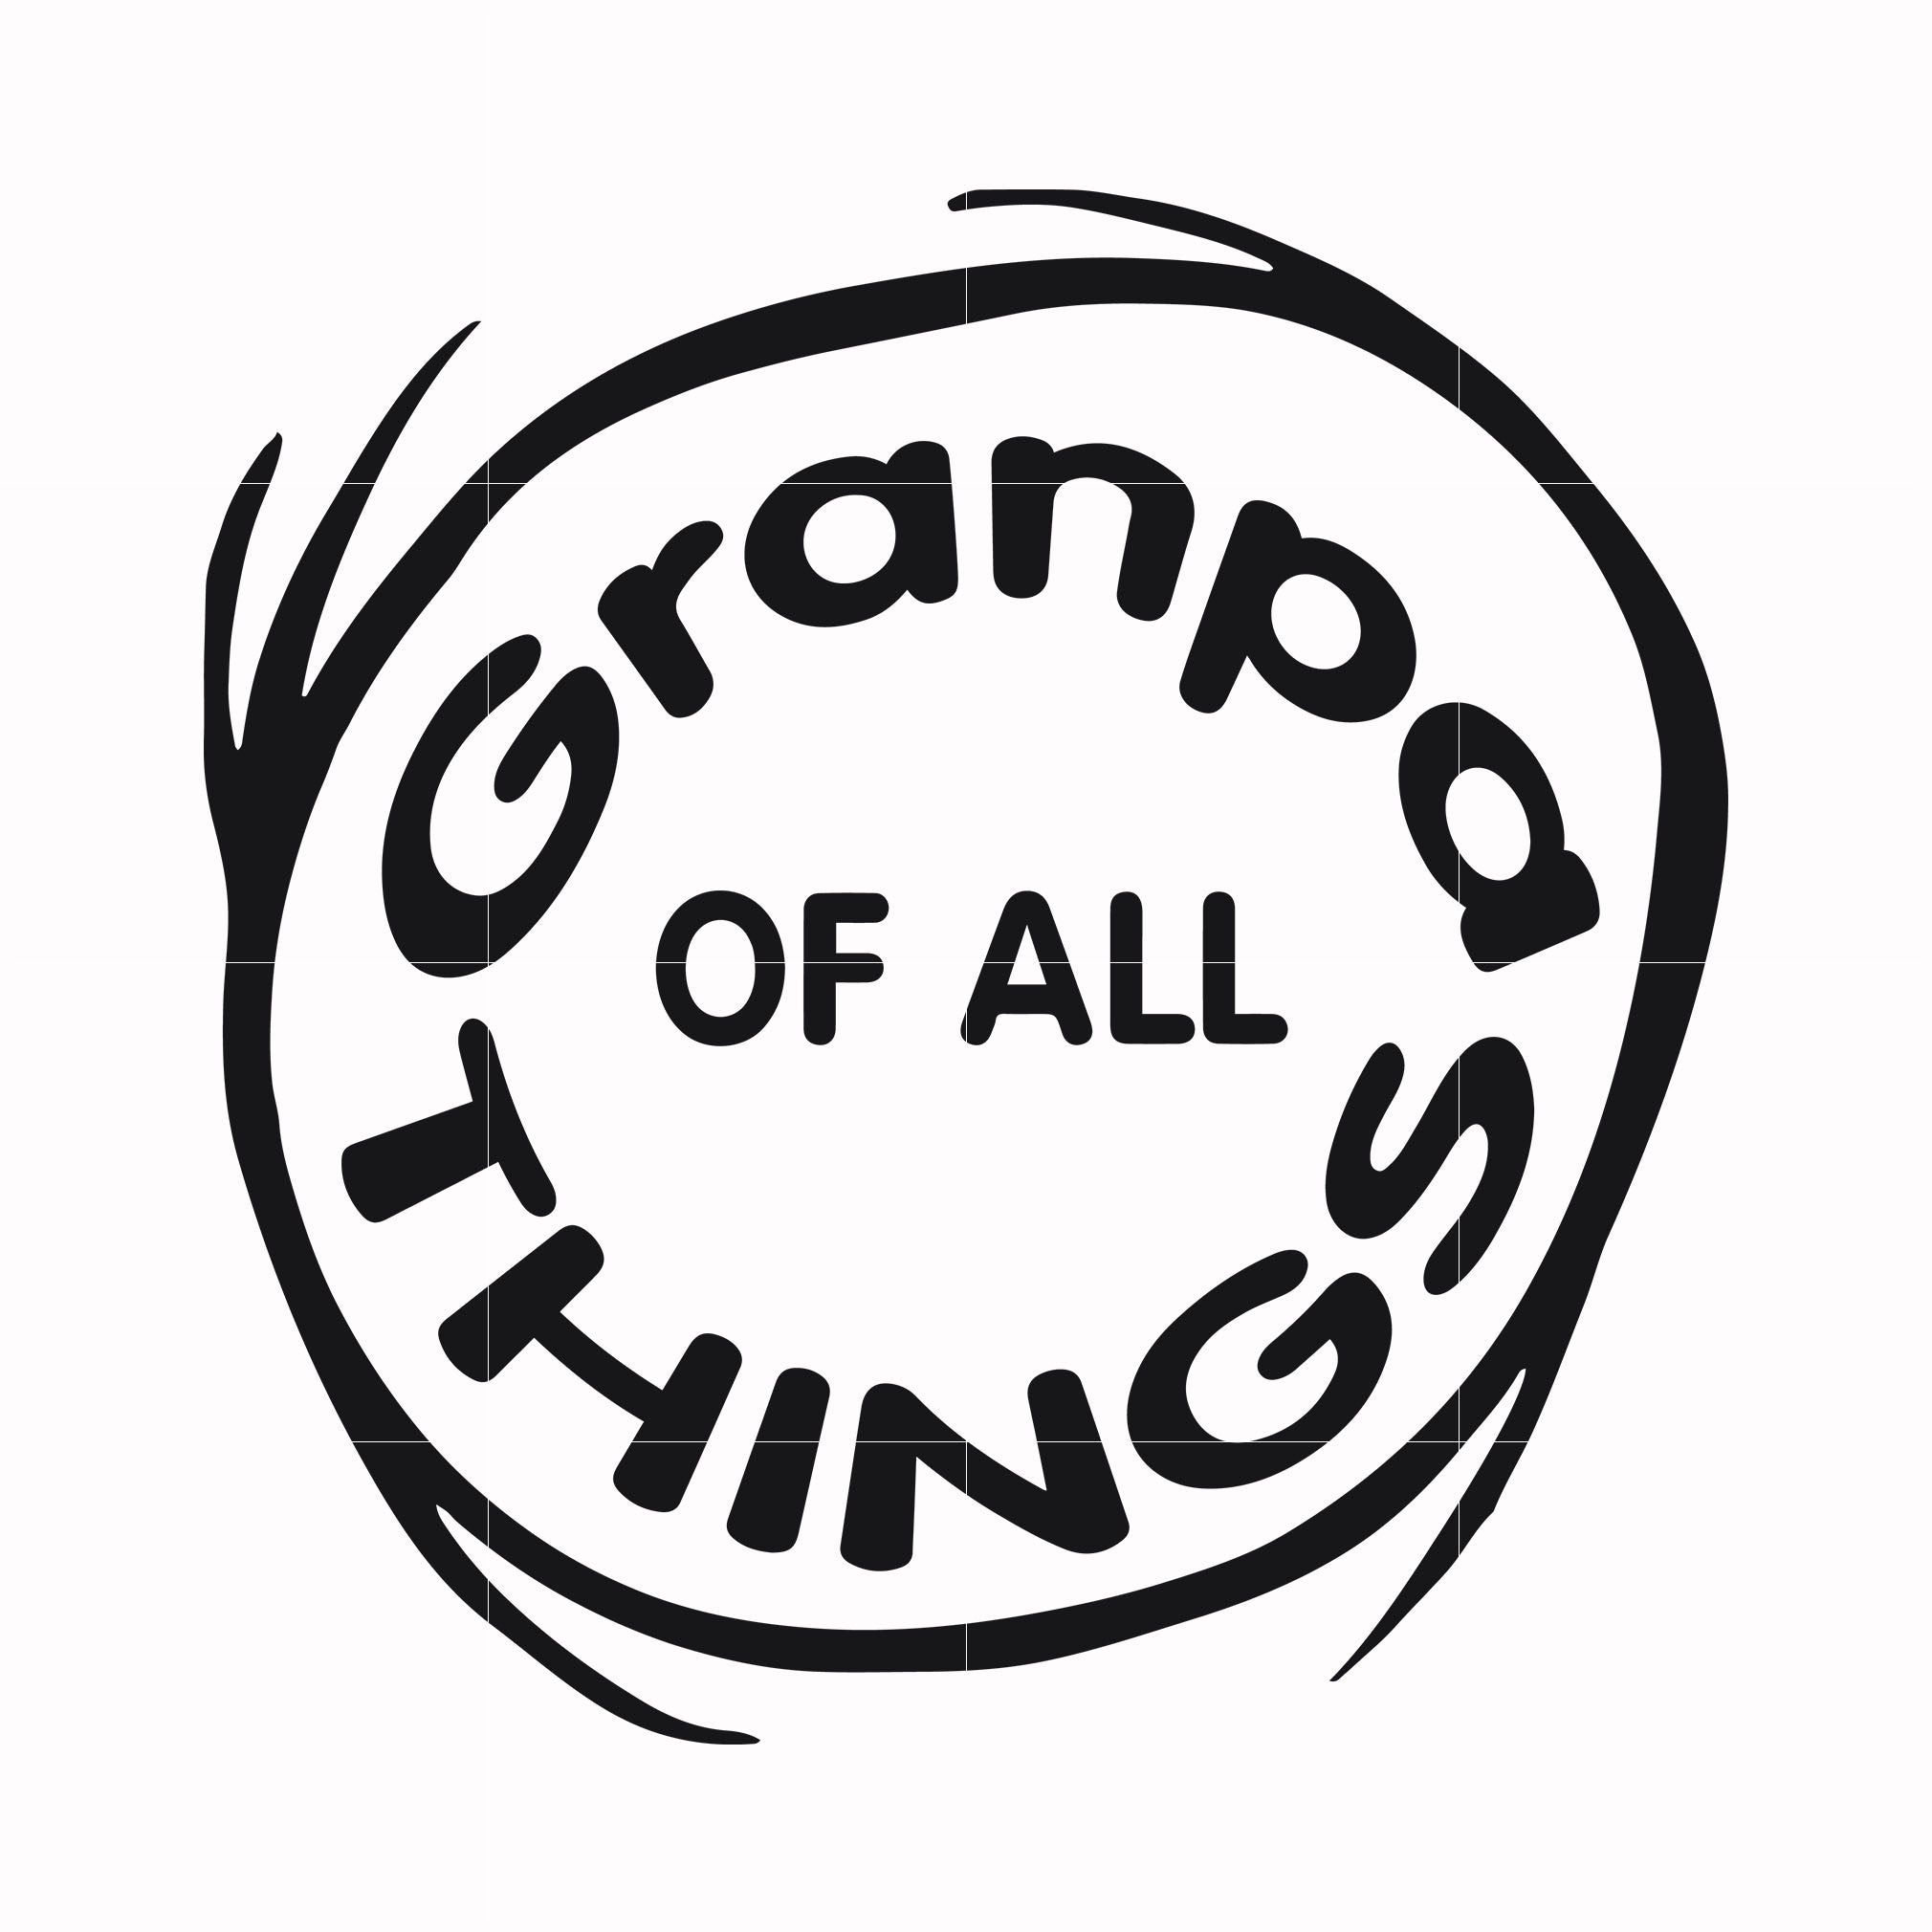 Granpa of all things, dr seuss svg, dr seuss quotes, digital file